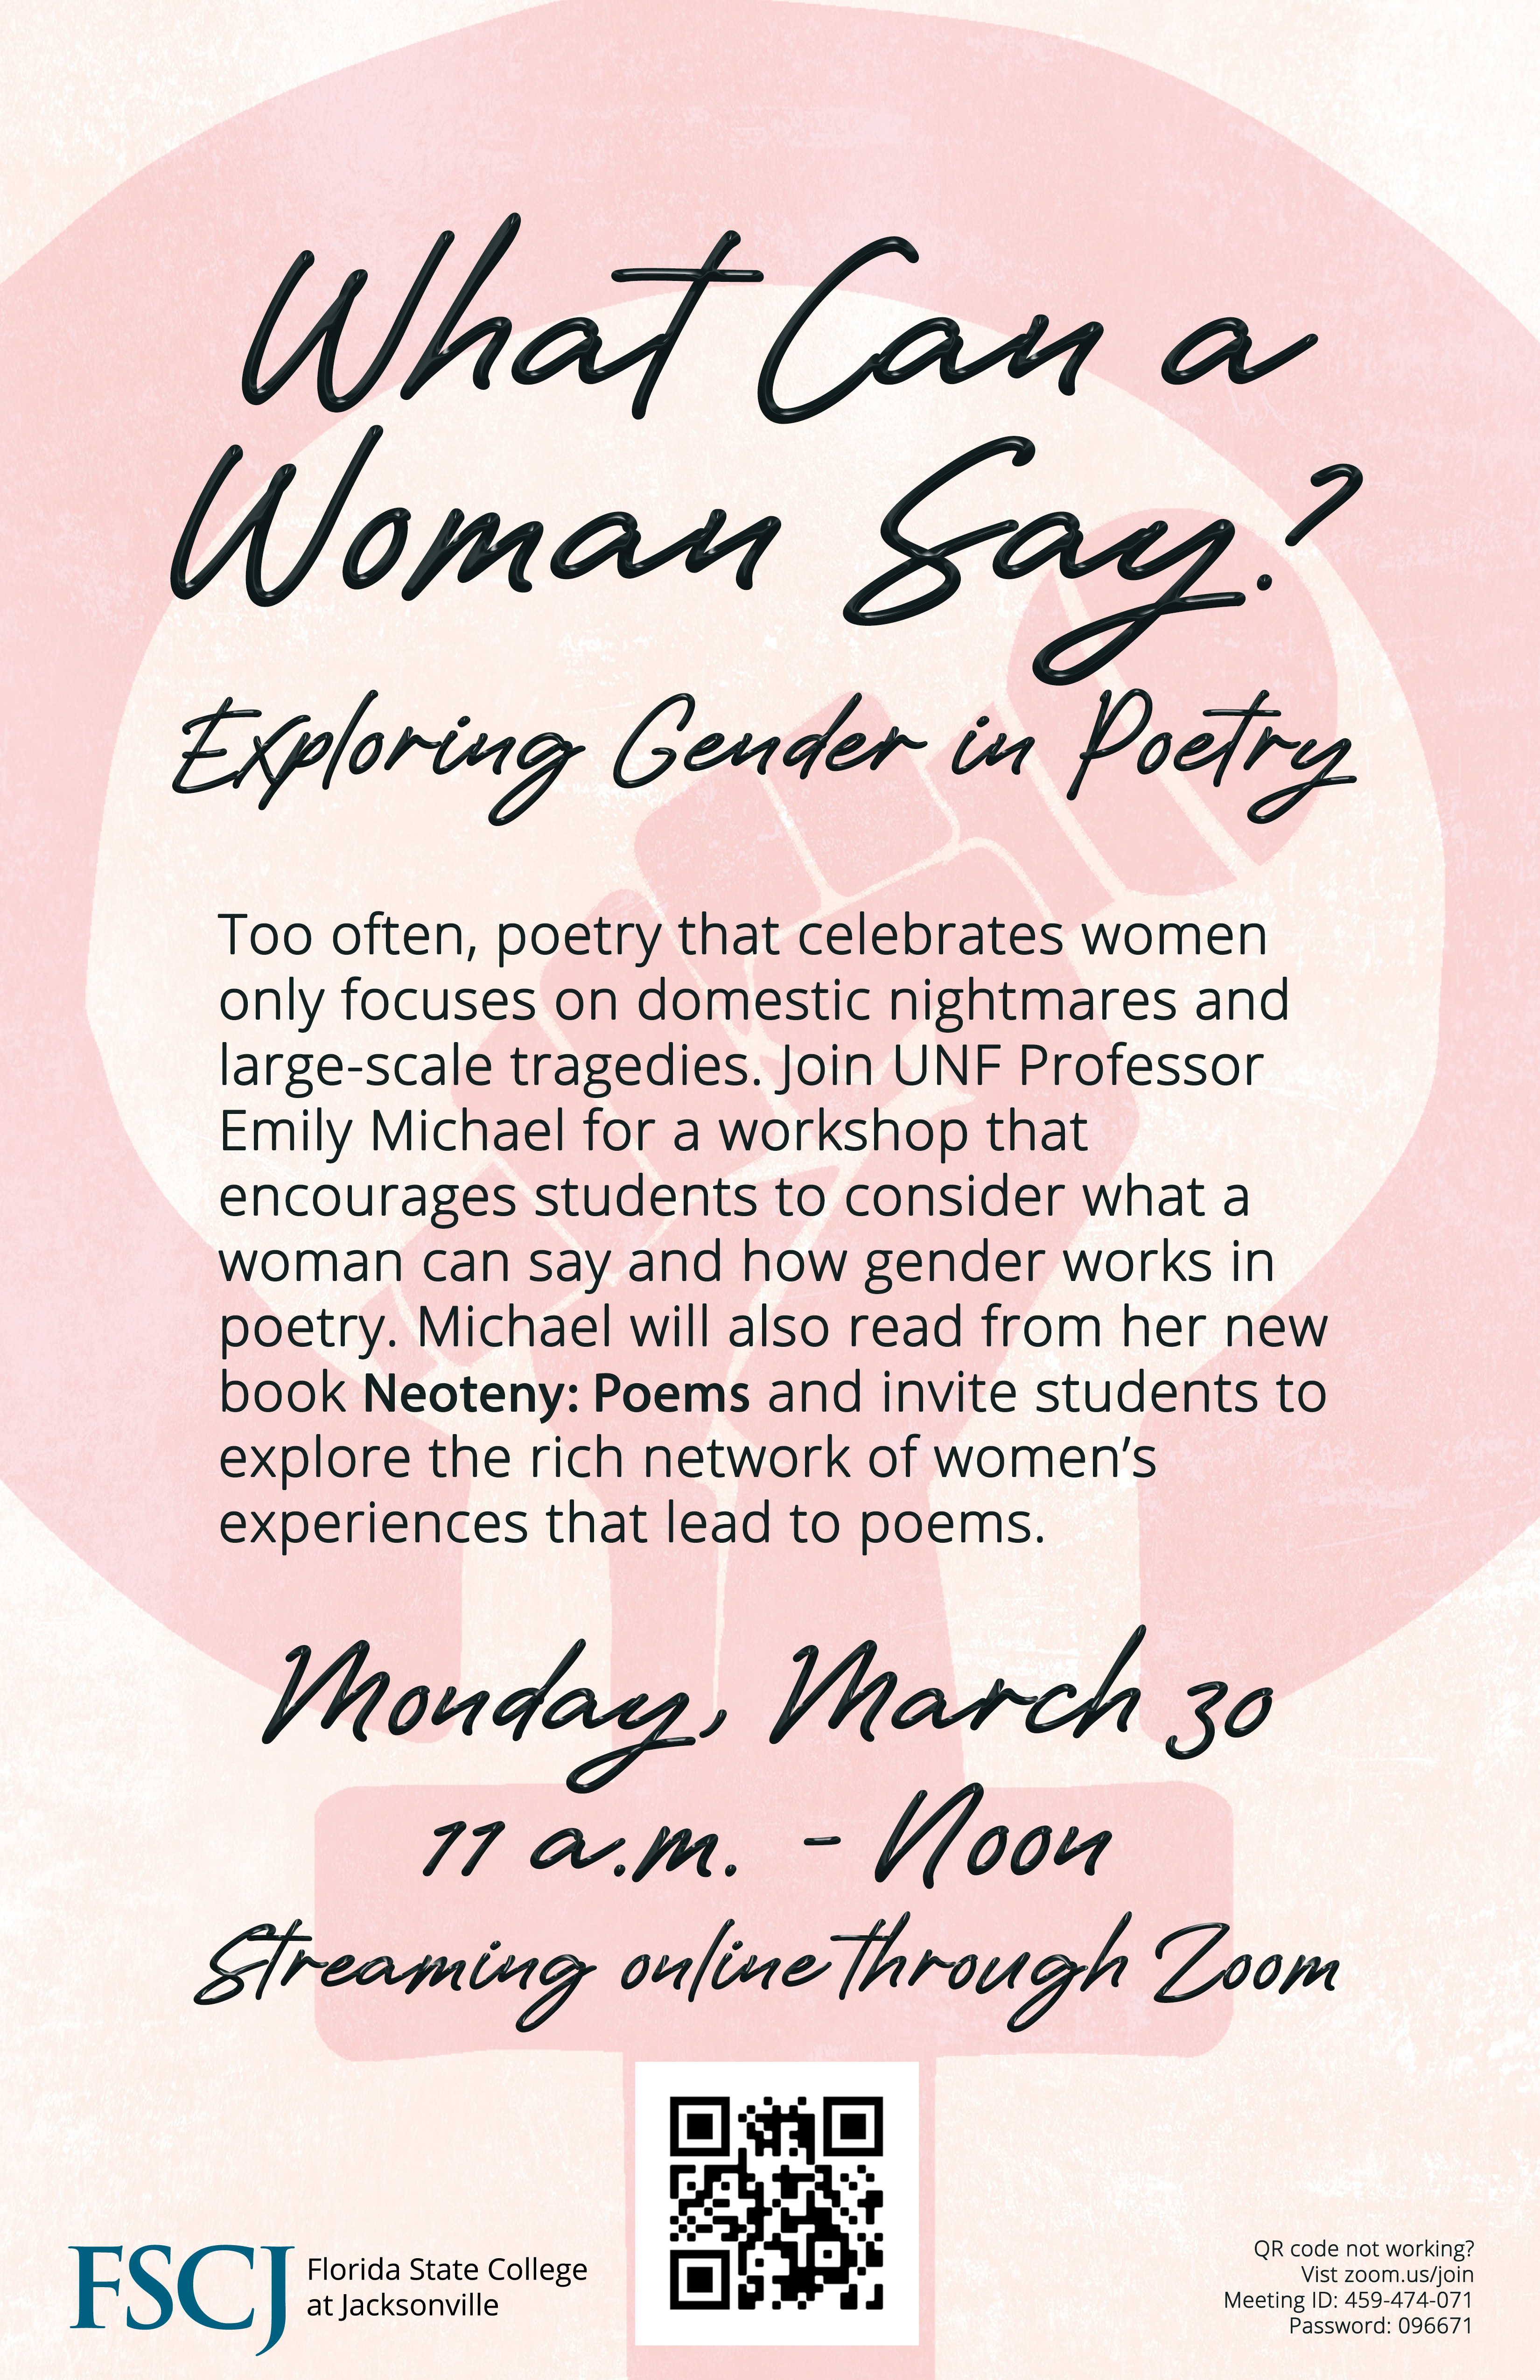 ONLINE: What Can a Woman Say? Exploring Gender in Poetry